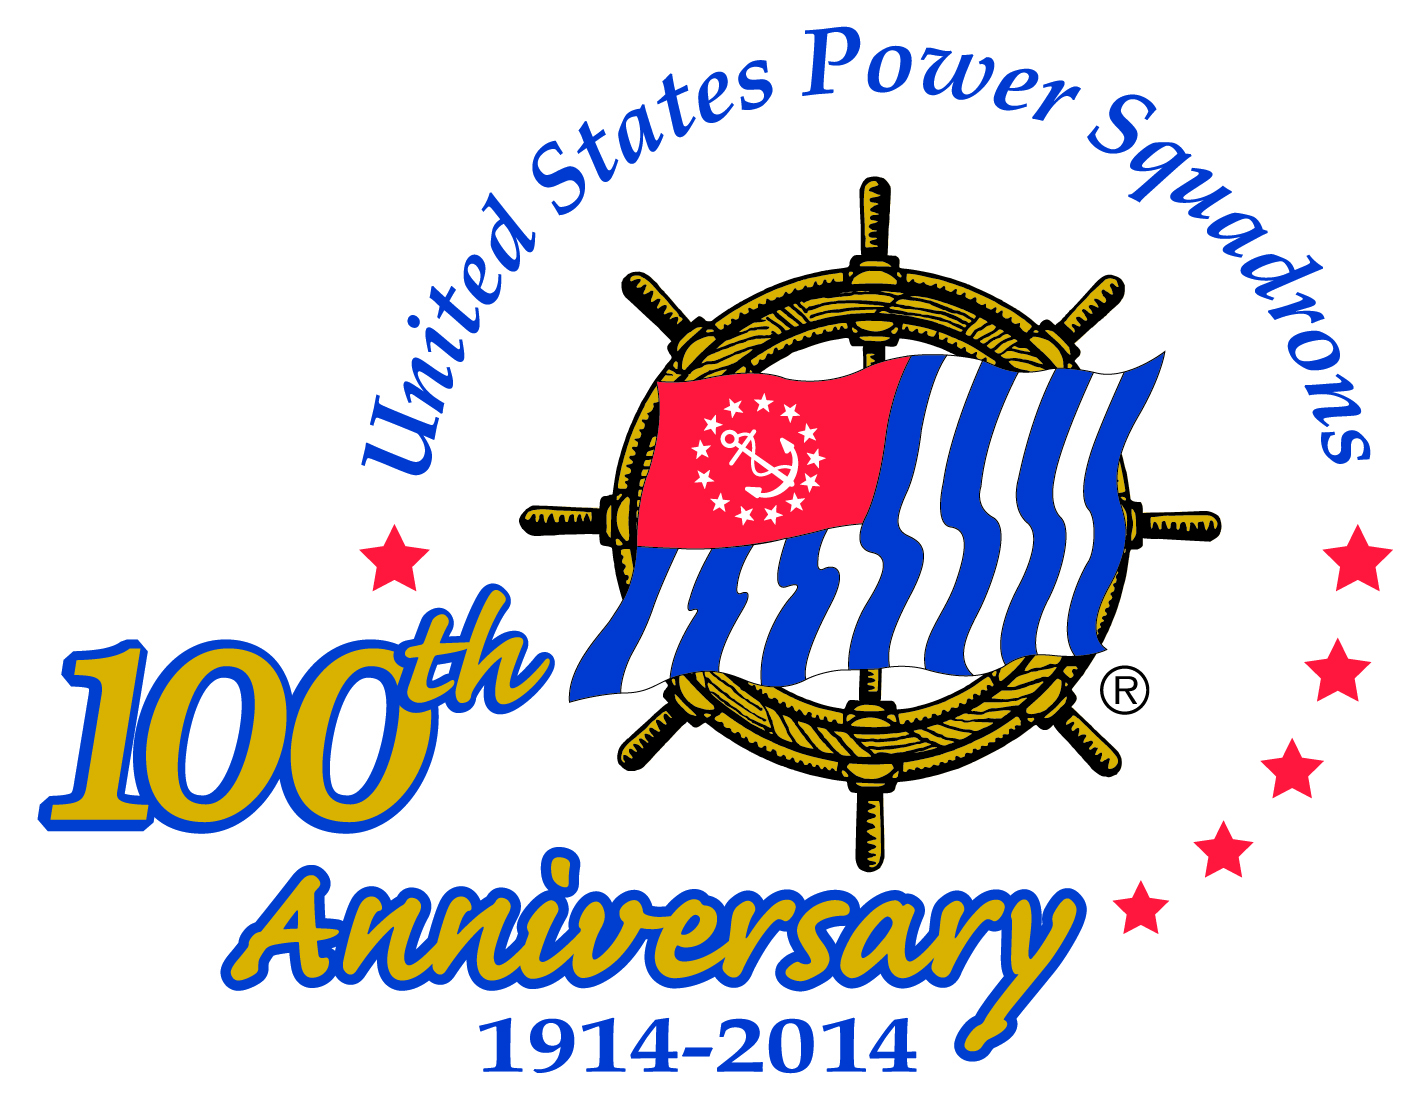 U.S. Power Squadron celebrates 100th anniversary